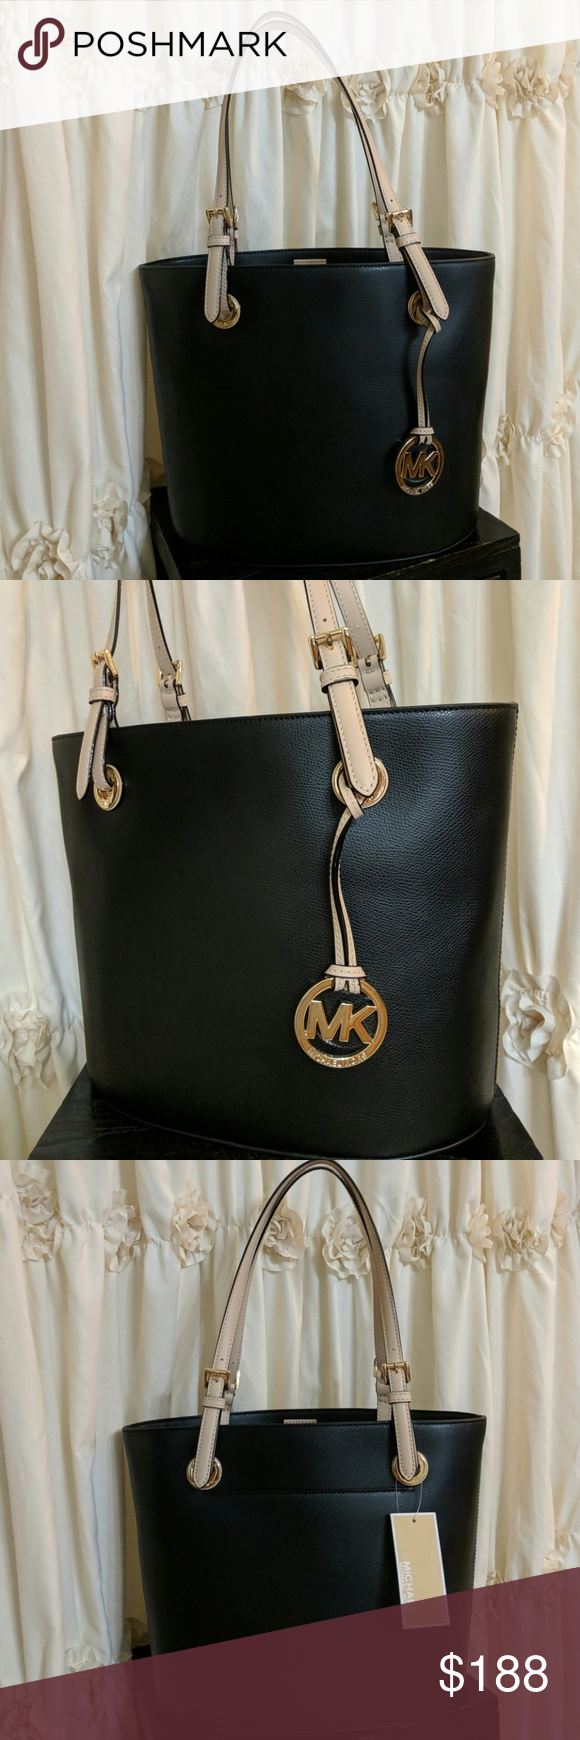 59ee85ab952 NWT Michael Kors Jet Set Medium Leather Tote Beautiful black and nude  leather bag featuring signature MK Logo charm and gold tone accents.